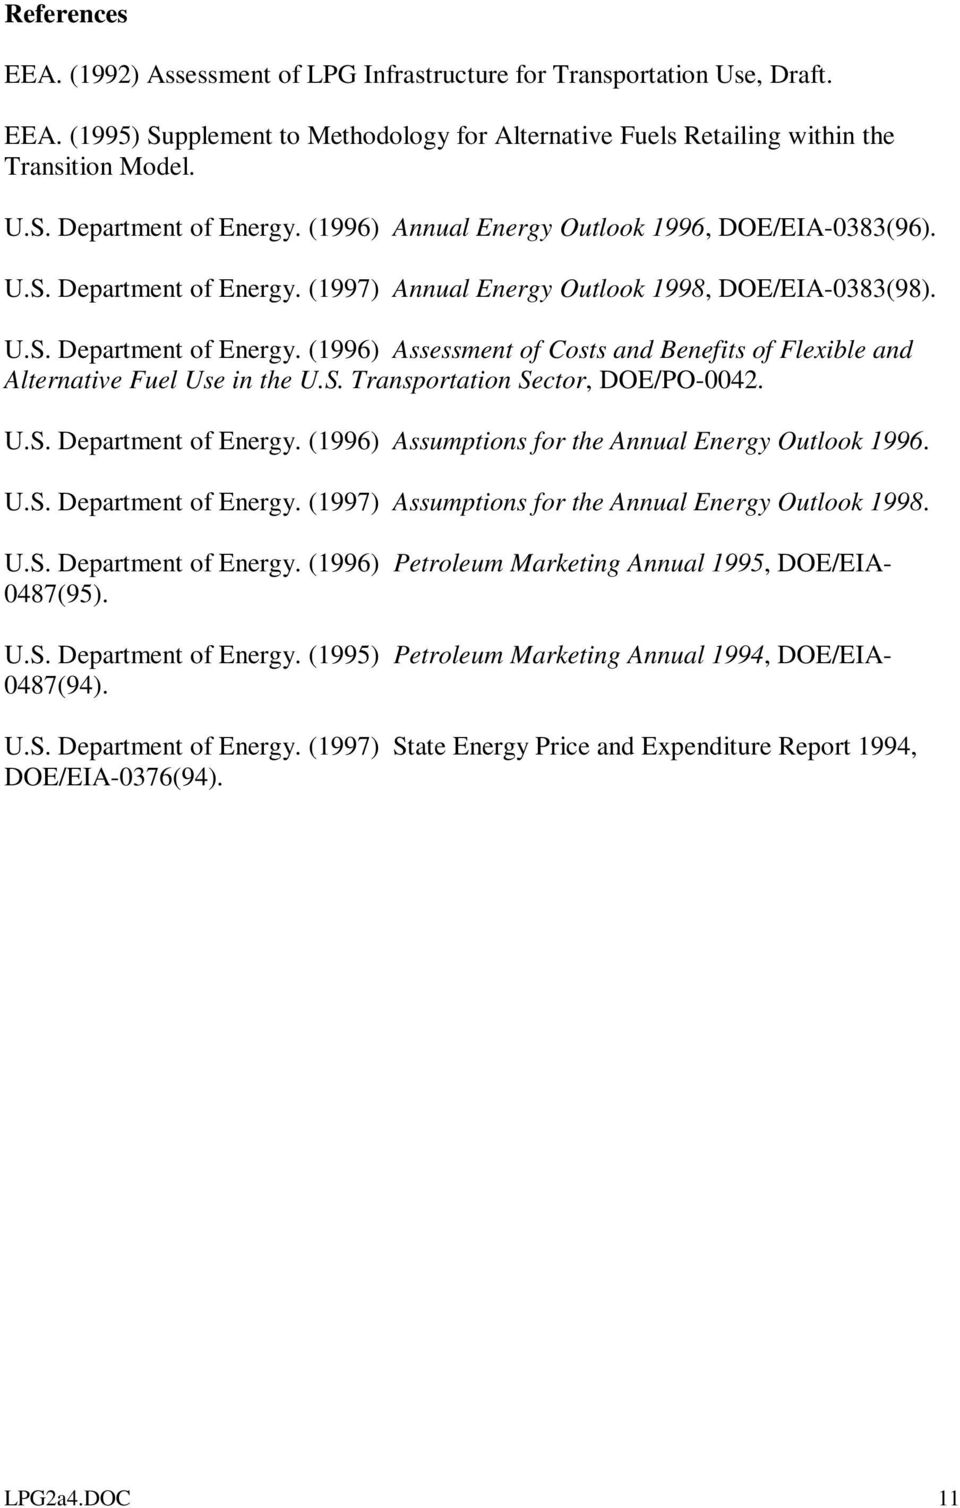 S. Transportation Sector, DOE/PO-0042. U.S. Department of Energy. (1996) Assumptions for the Annual Energy Outlook 1996. U.S. Department of Energy. (1997) Assumptions for the Annual Energy Outlook 1998.